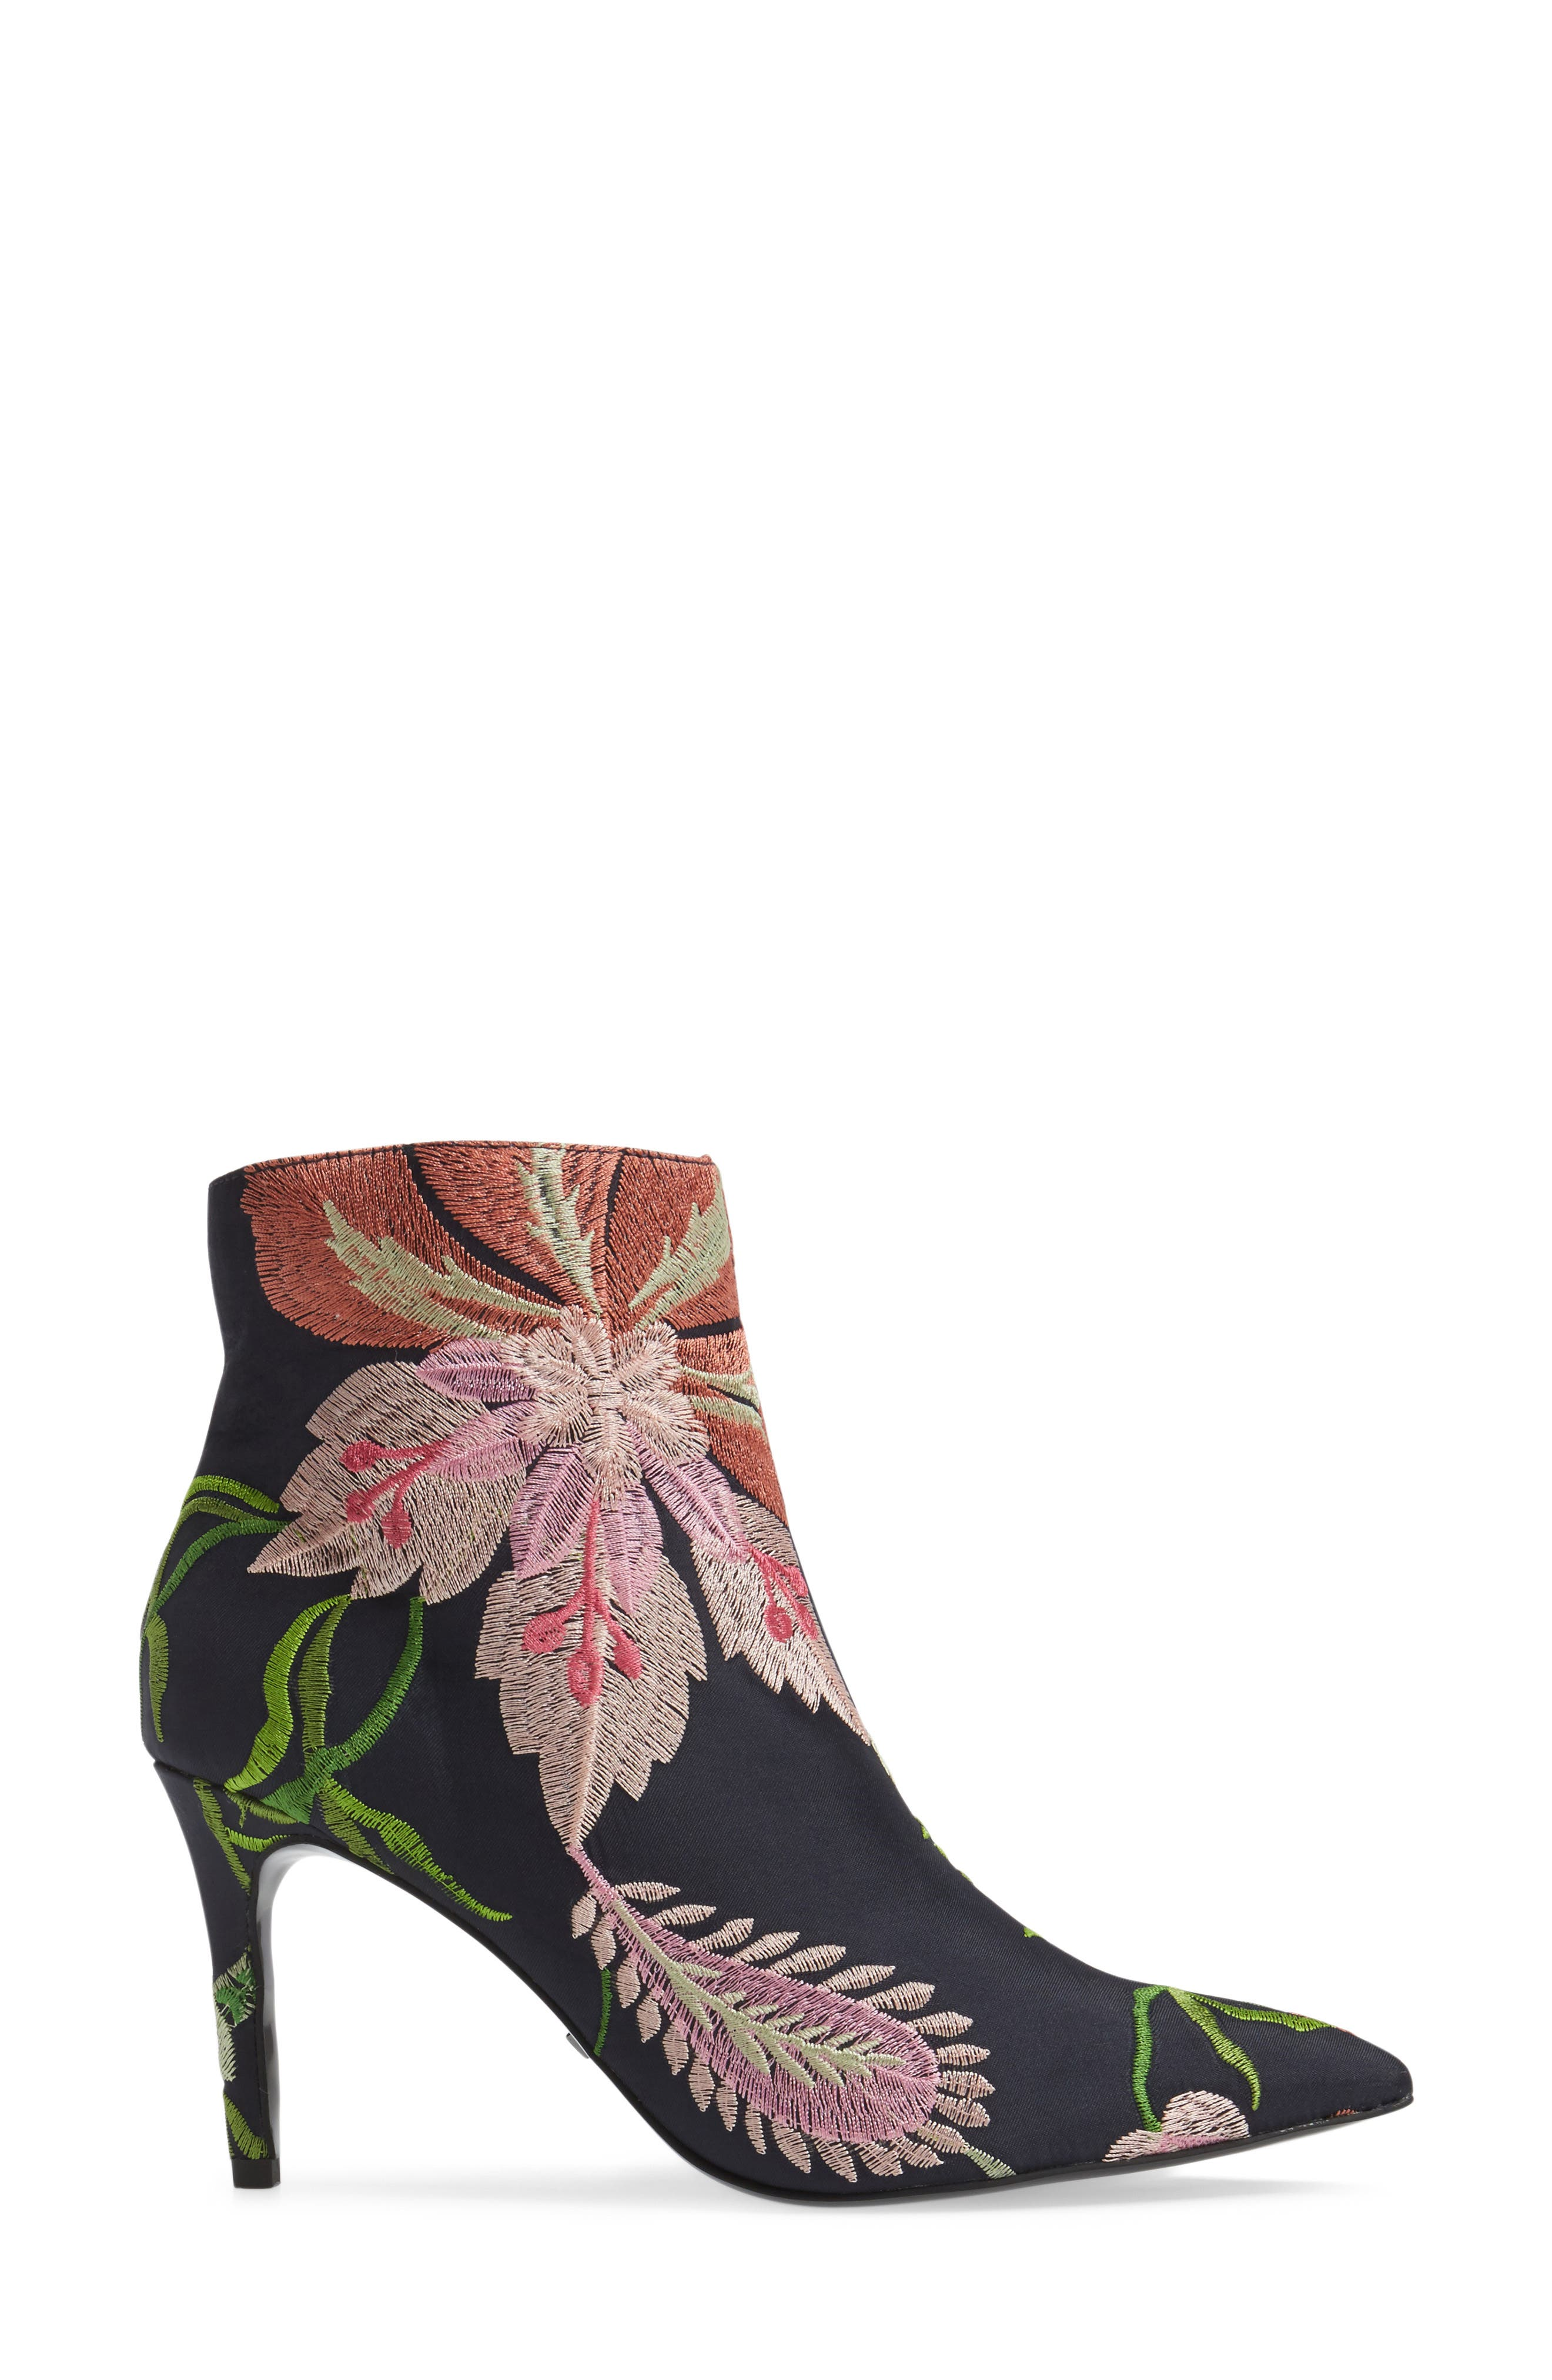 Mimosa Pointy Toe Bootie,                             Alternate thumbnail 3, color,                             002